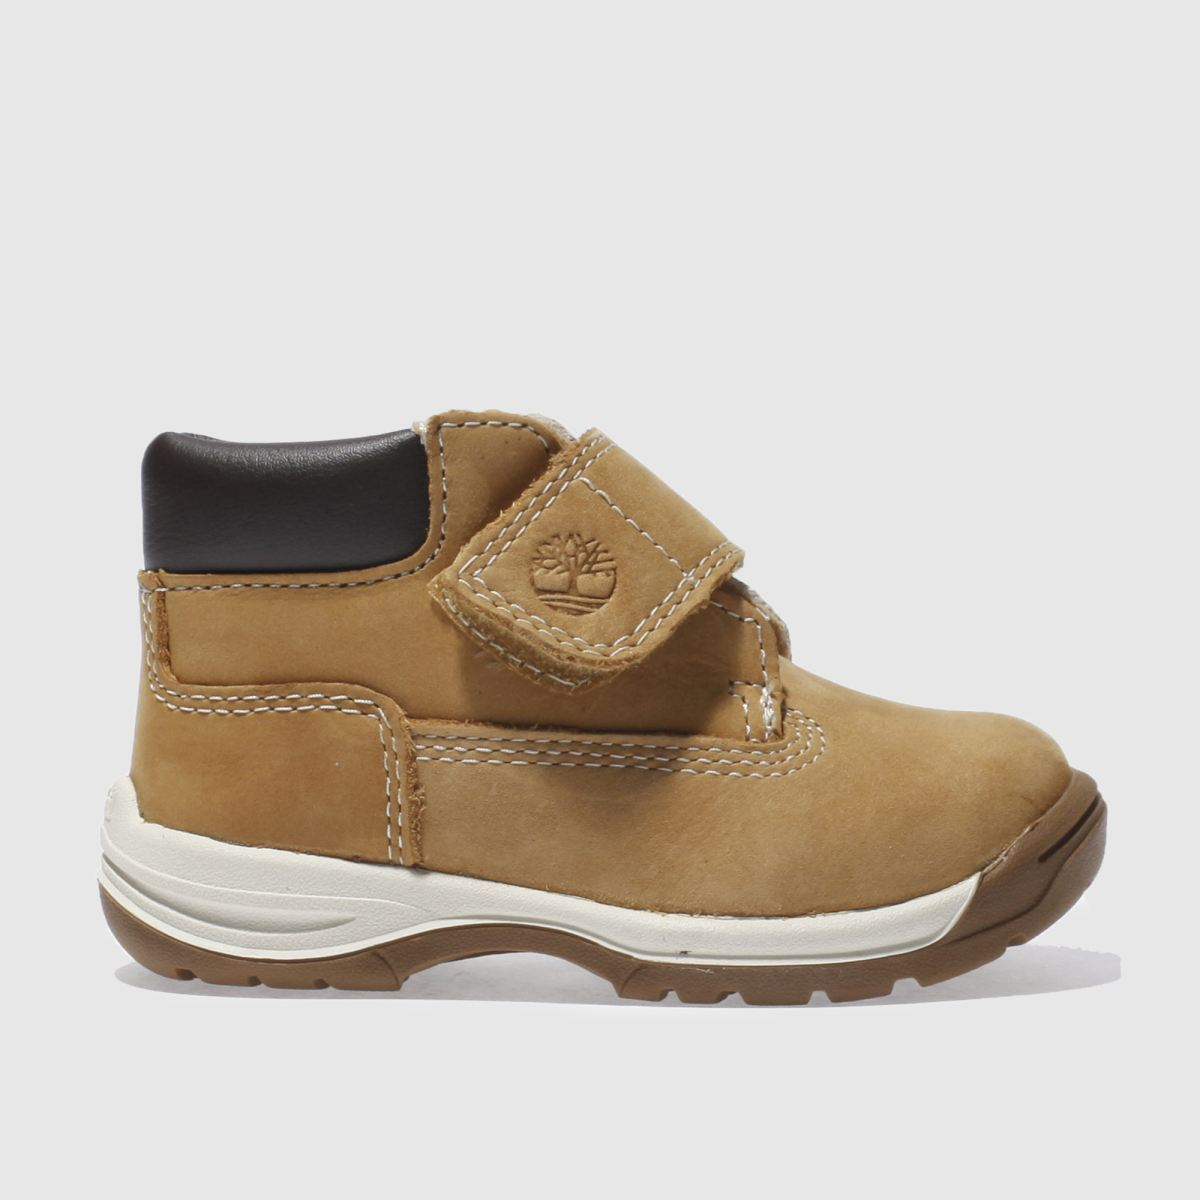 timberland natural timber tykes Boys Toddler Boots